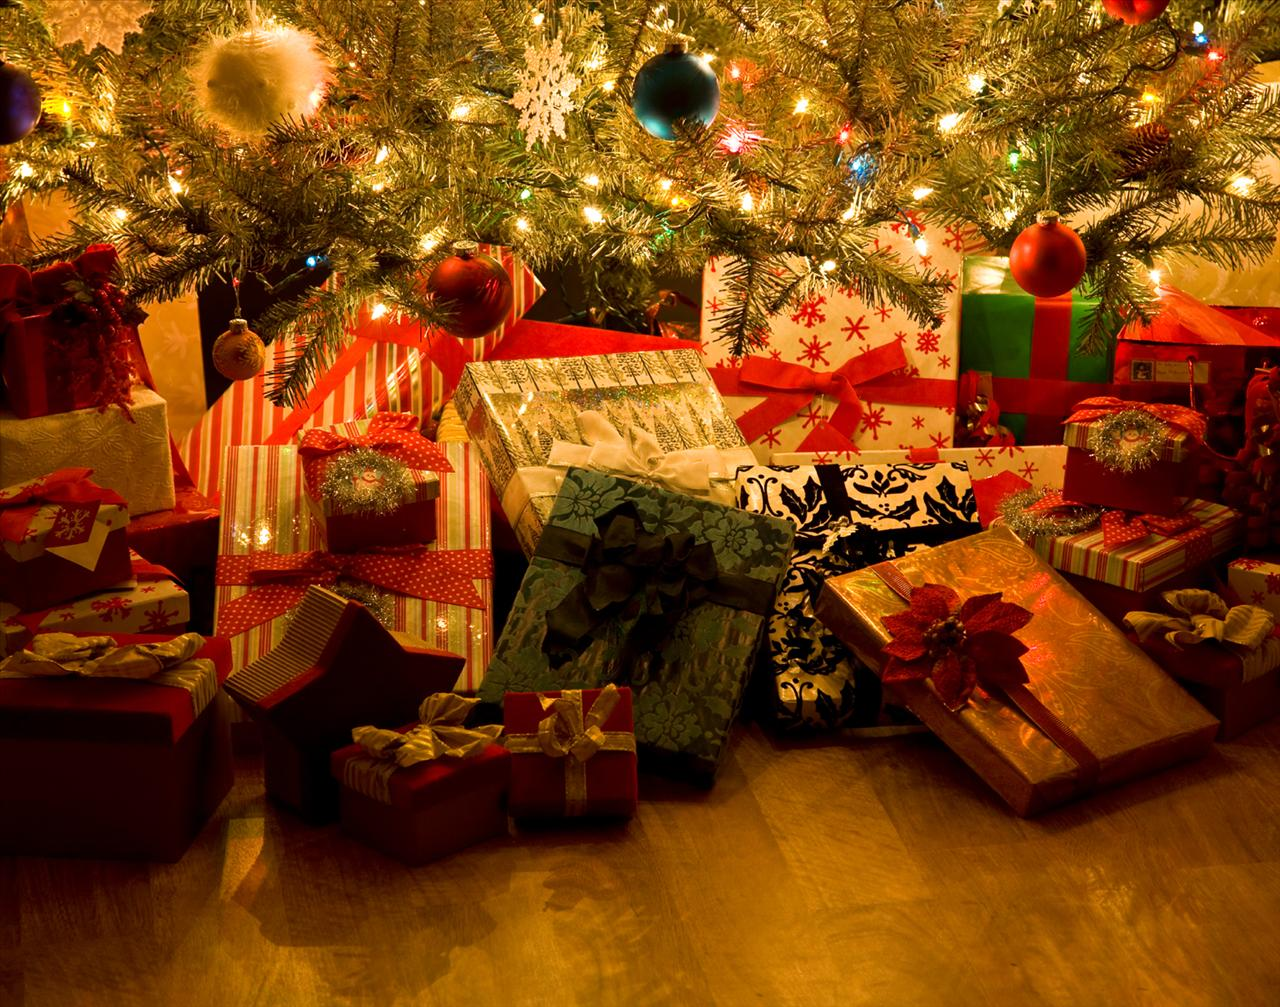 Going Gift Free Can Make For A Stress Free Christmas Says Family Globalnews Ca